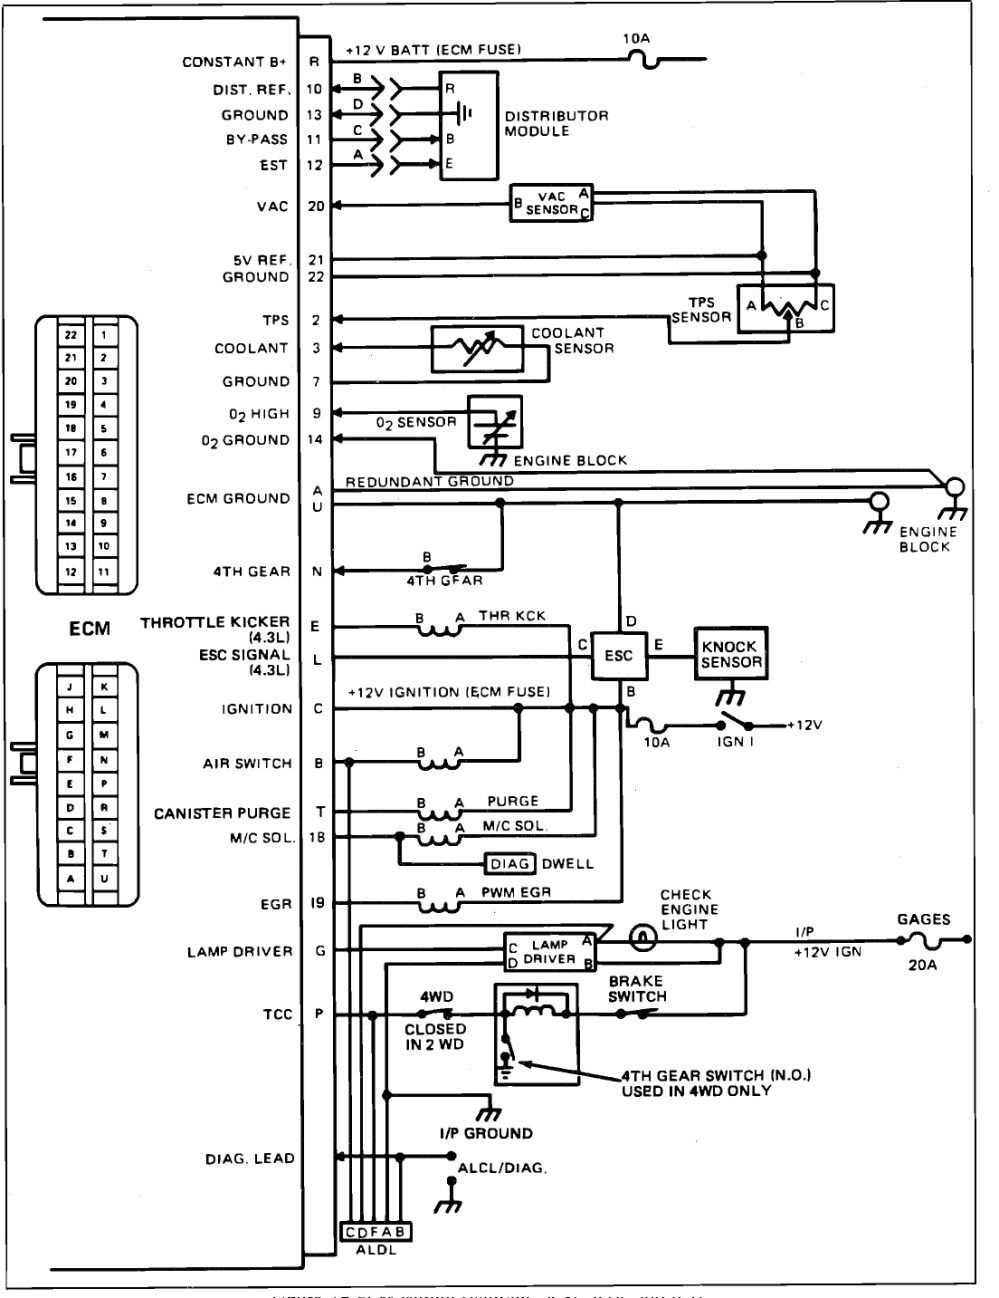 medium resolution of i need a fuse box diagram with wiring colors